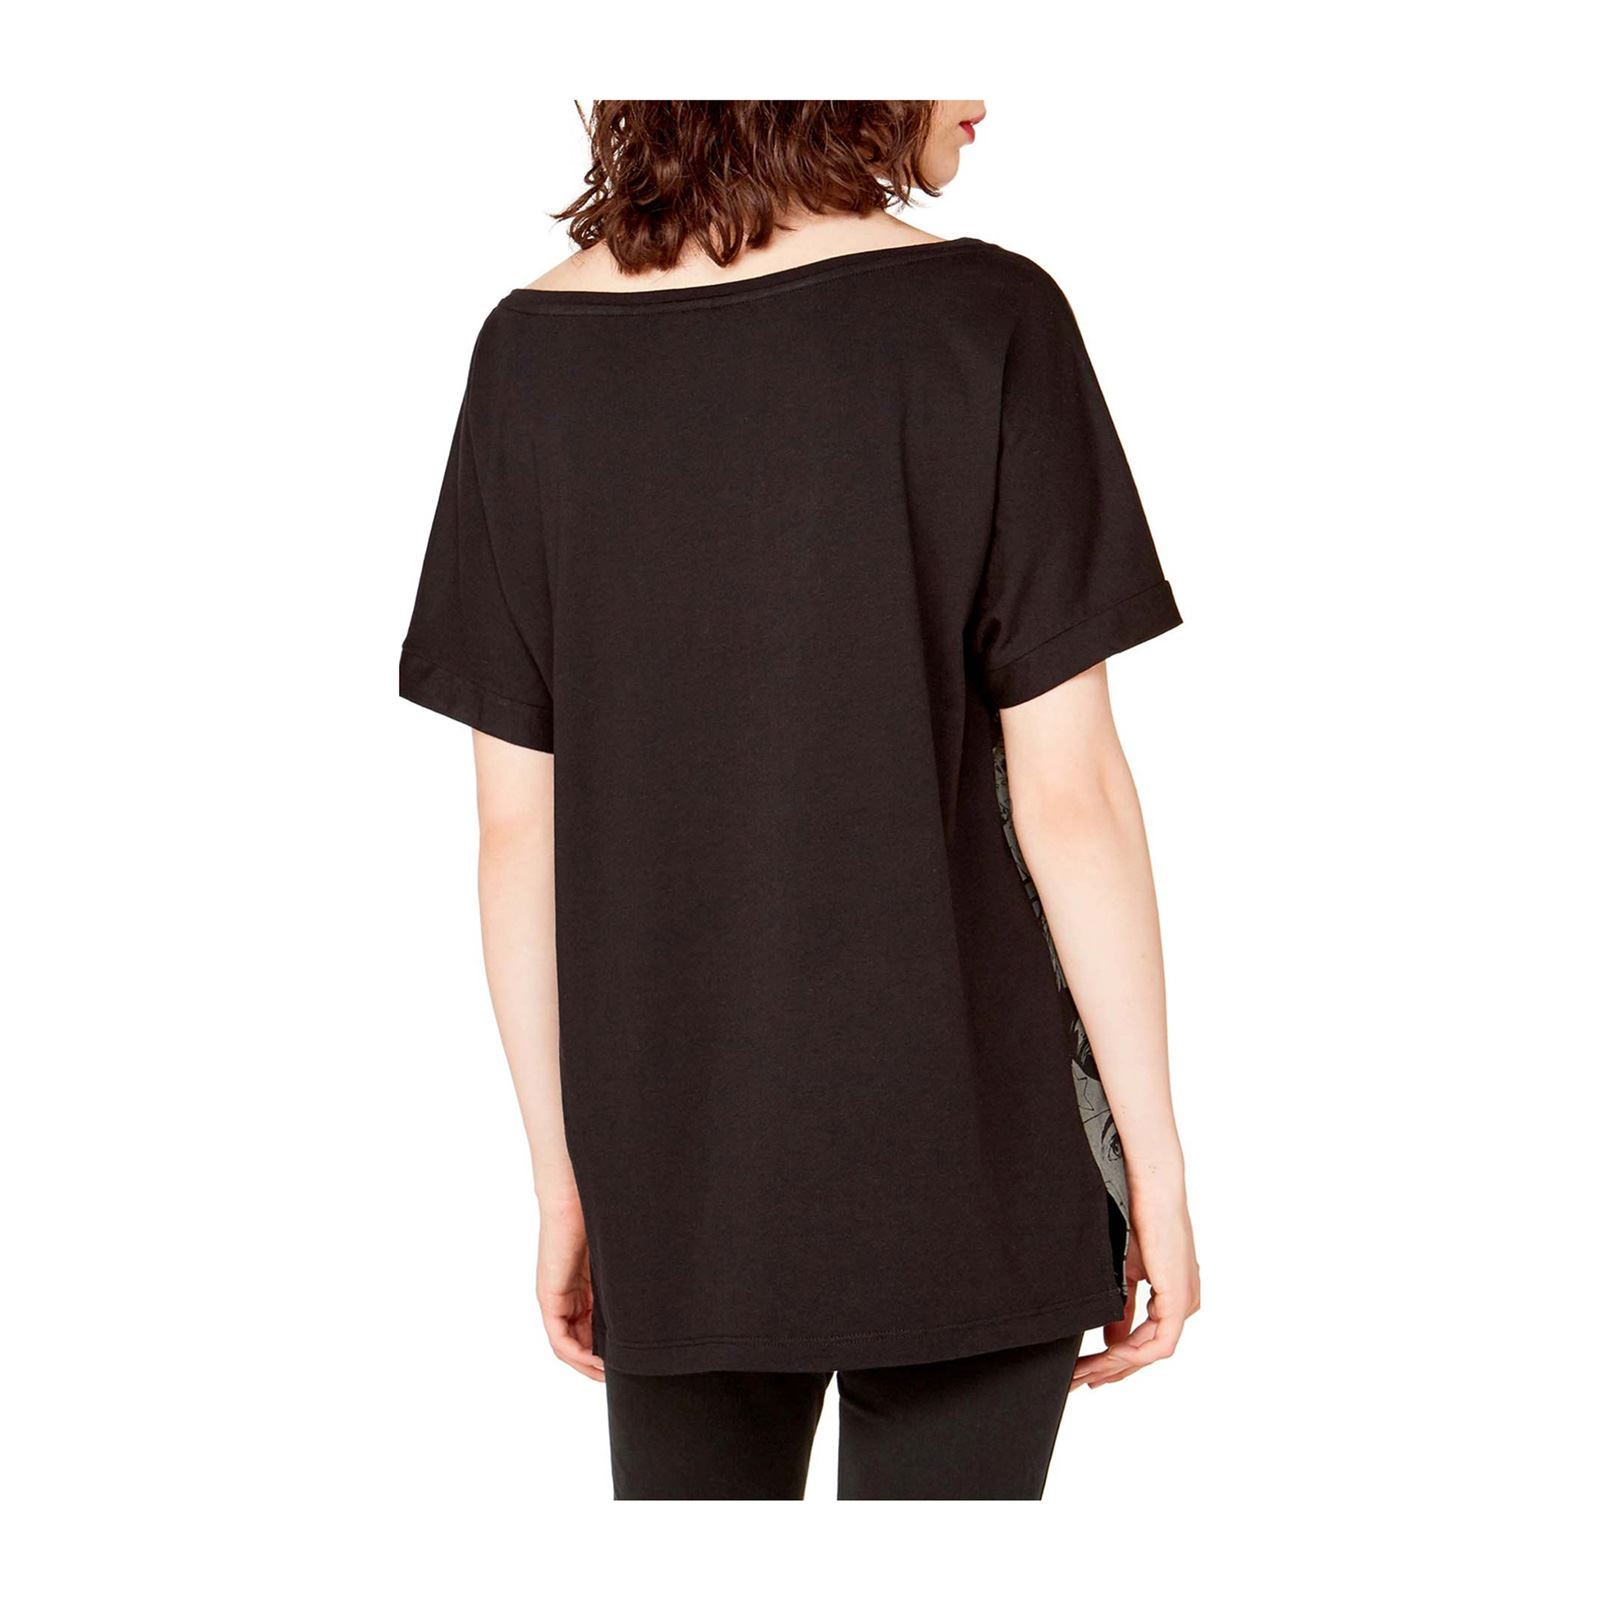 Benetton shirt V Femme T Manches CourtesMulticolore CrdBoexWQ